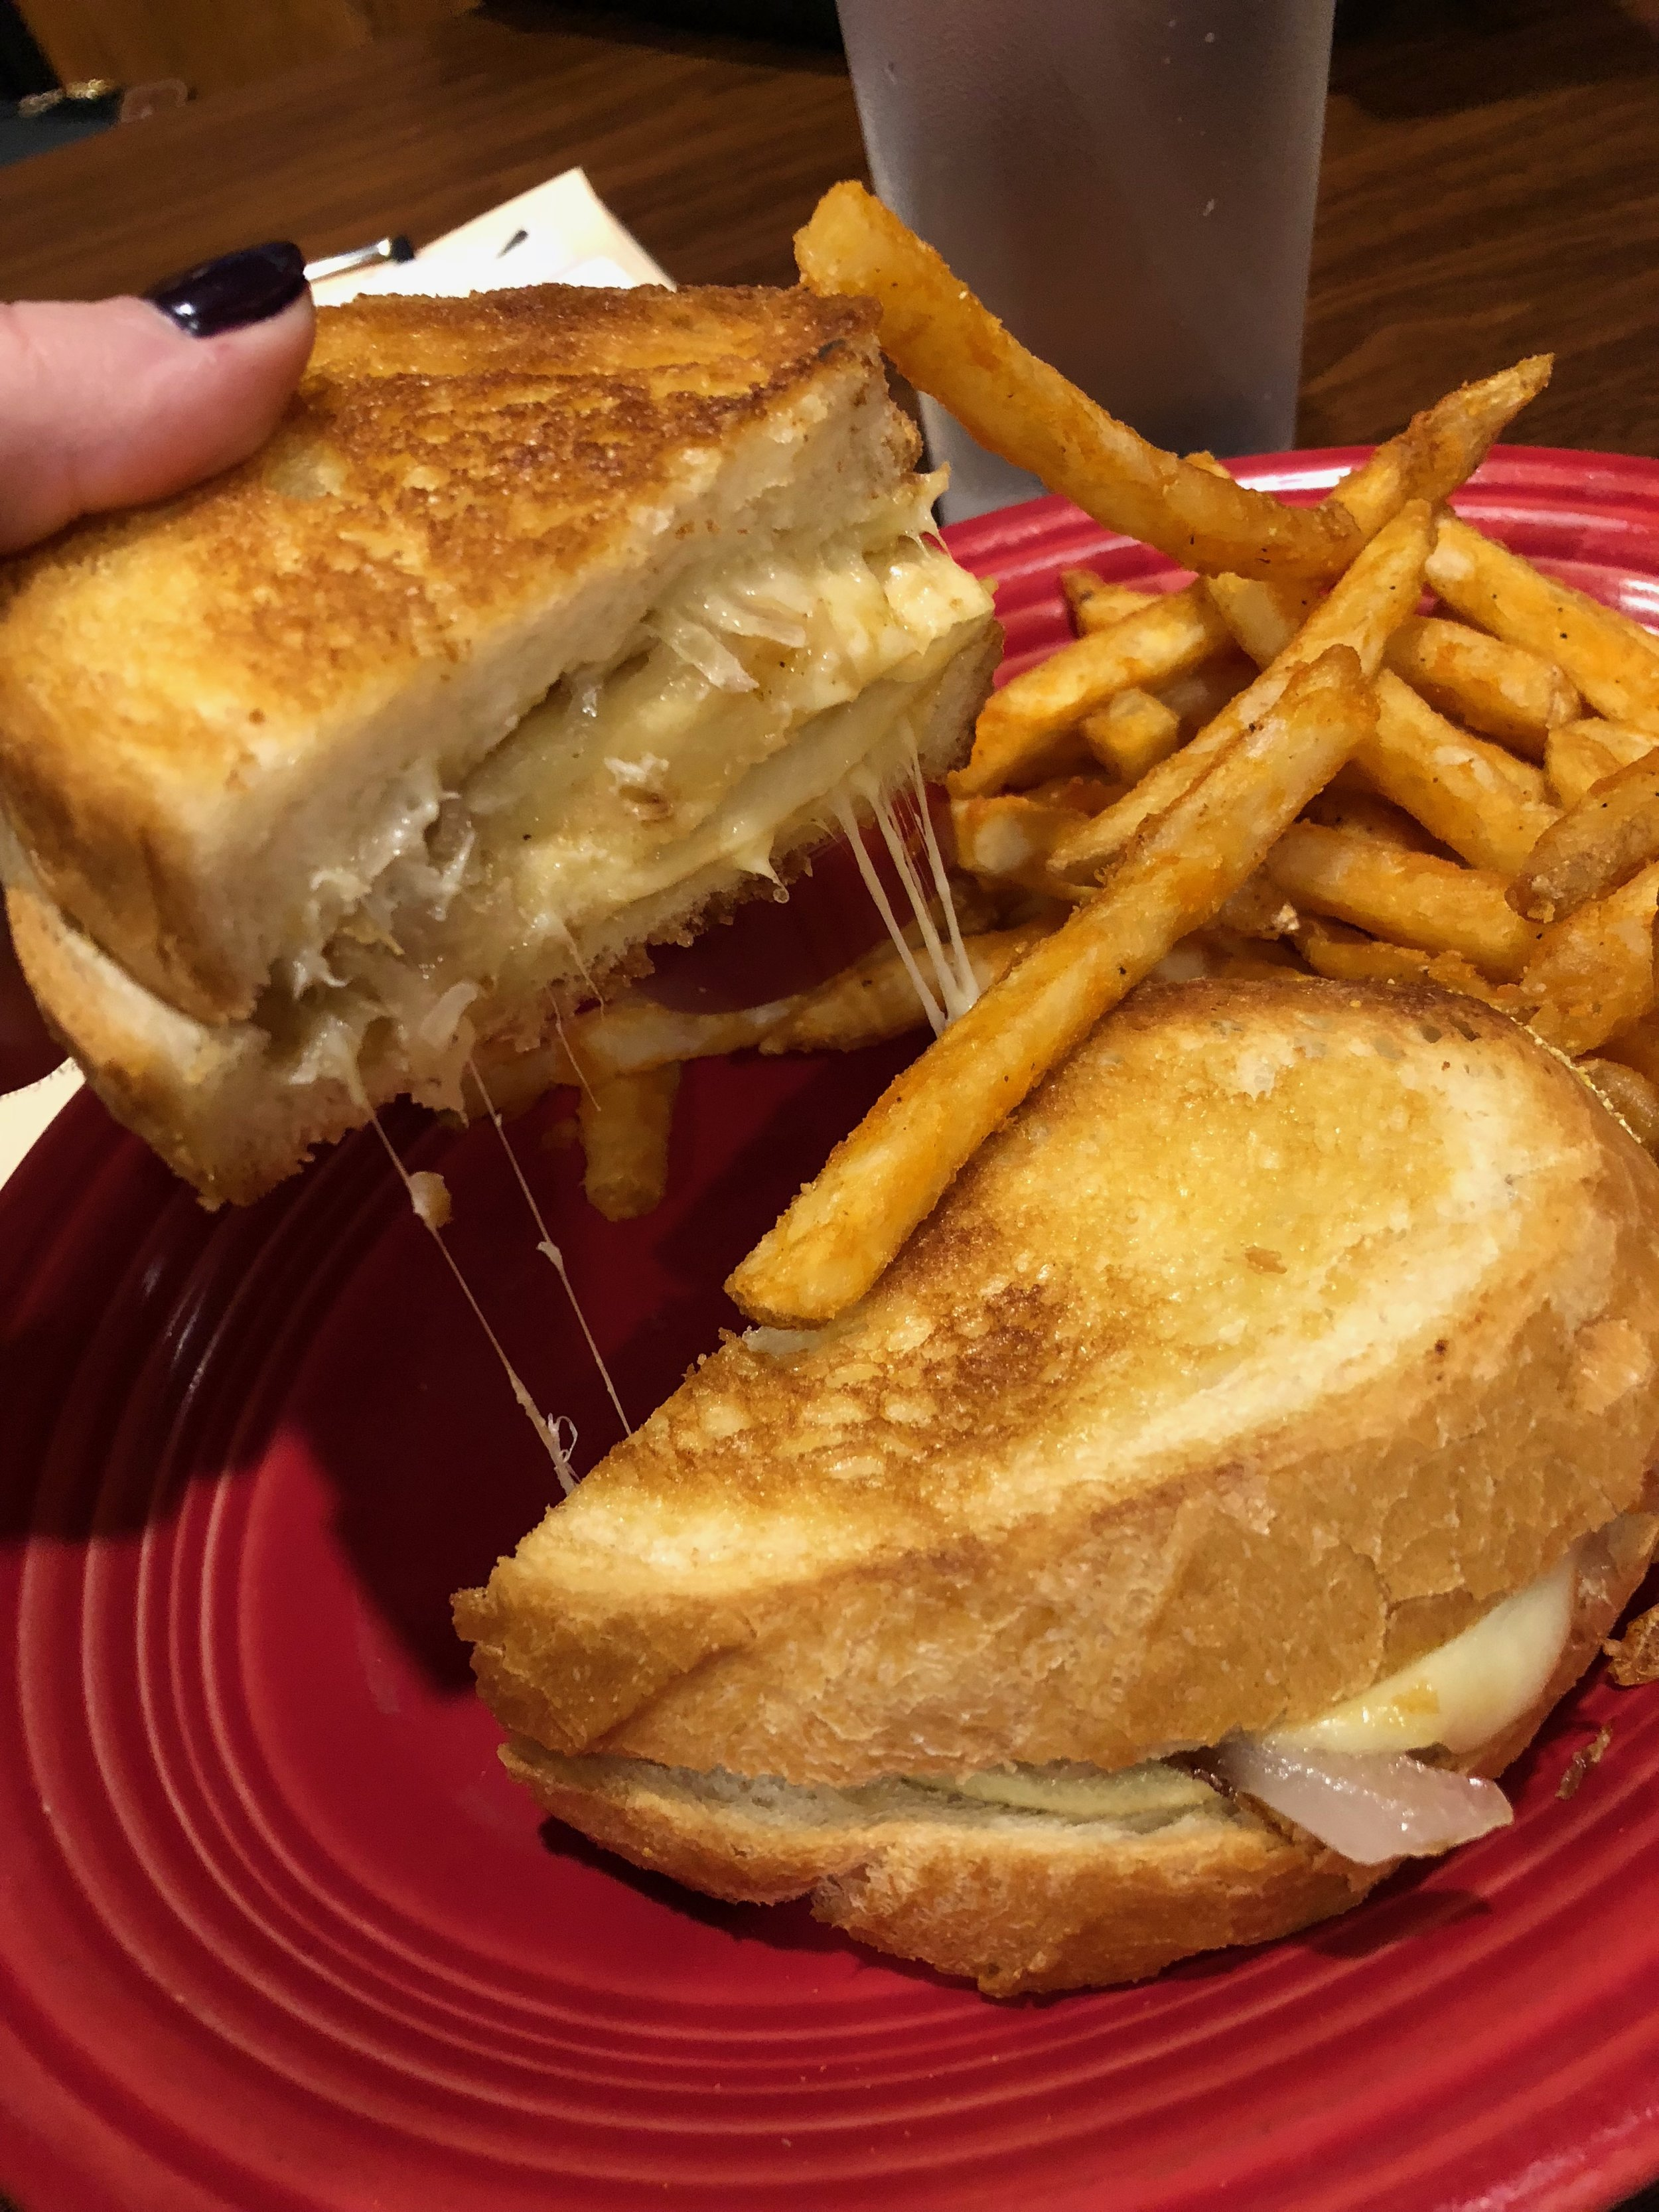 Pittsburgh Grilled Cheese - A grilled cheese sandwich with melted Muenster, pierogies, sauerkraut and onions on buttered Italian bread